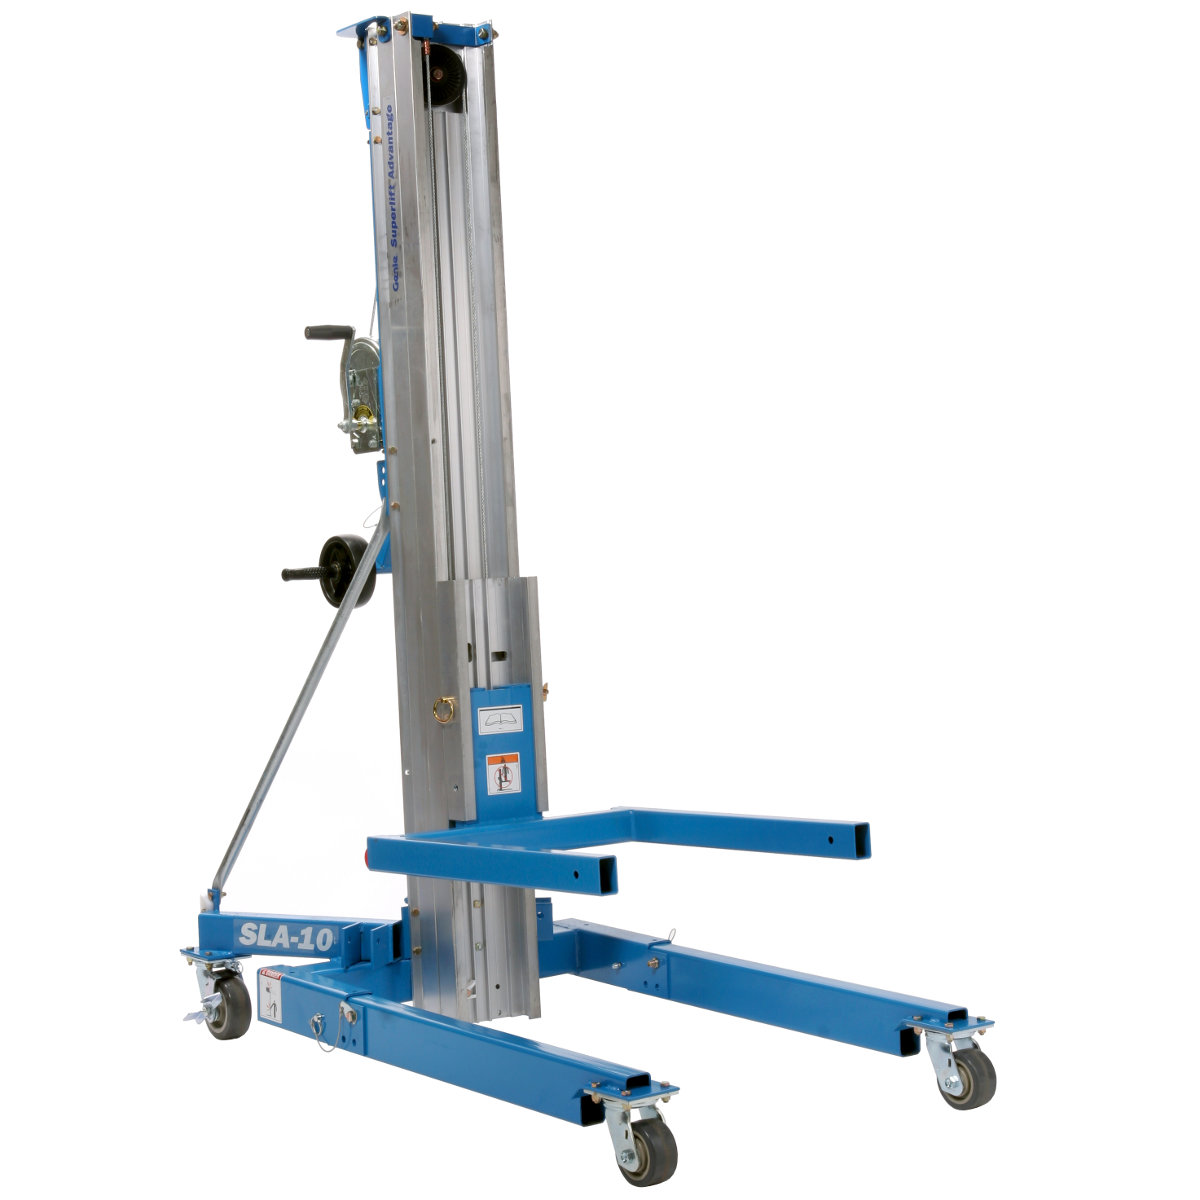 Genie-Superlift-Advantage-SLA10-Tool-Hire.jpg